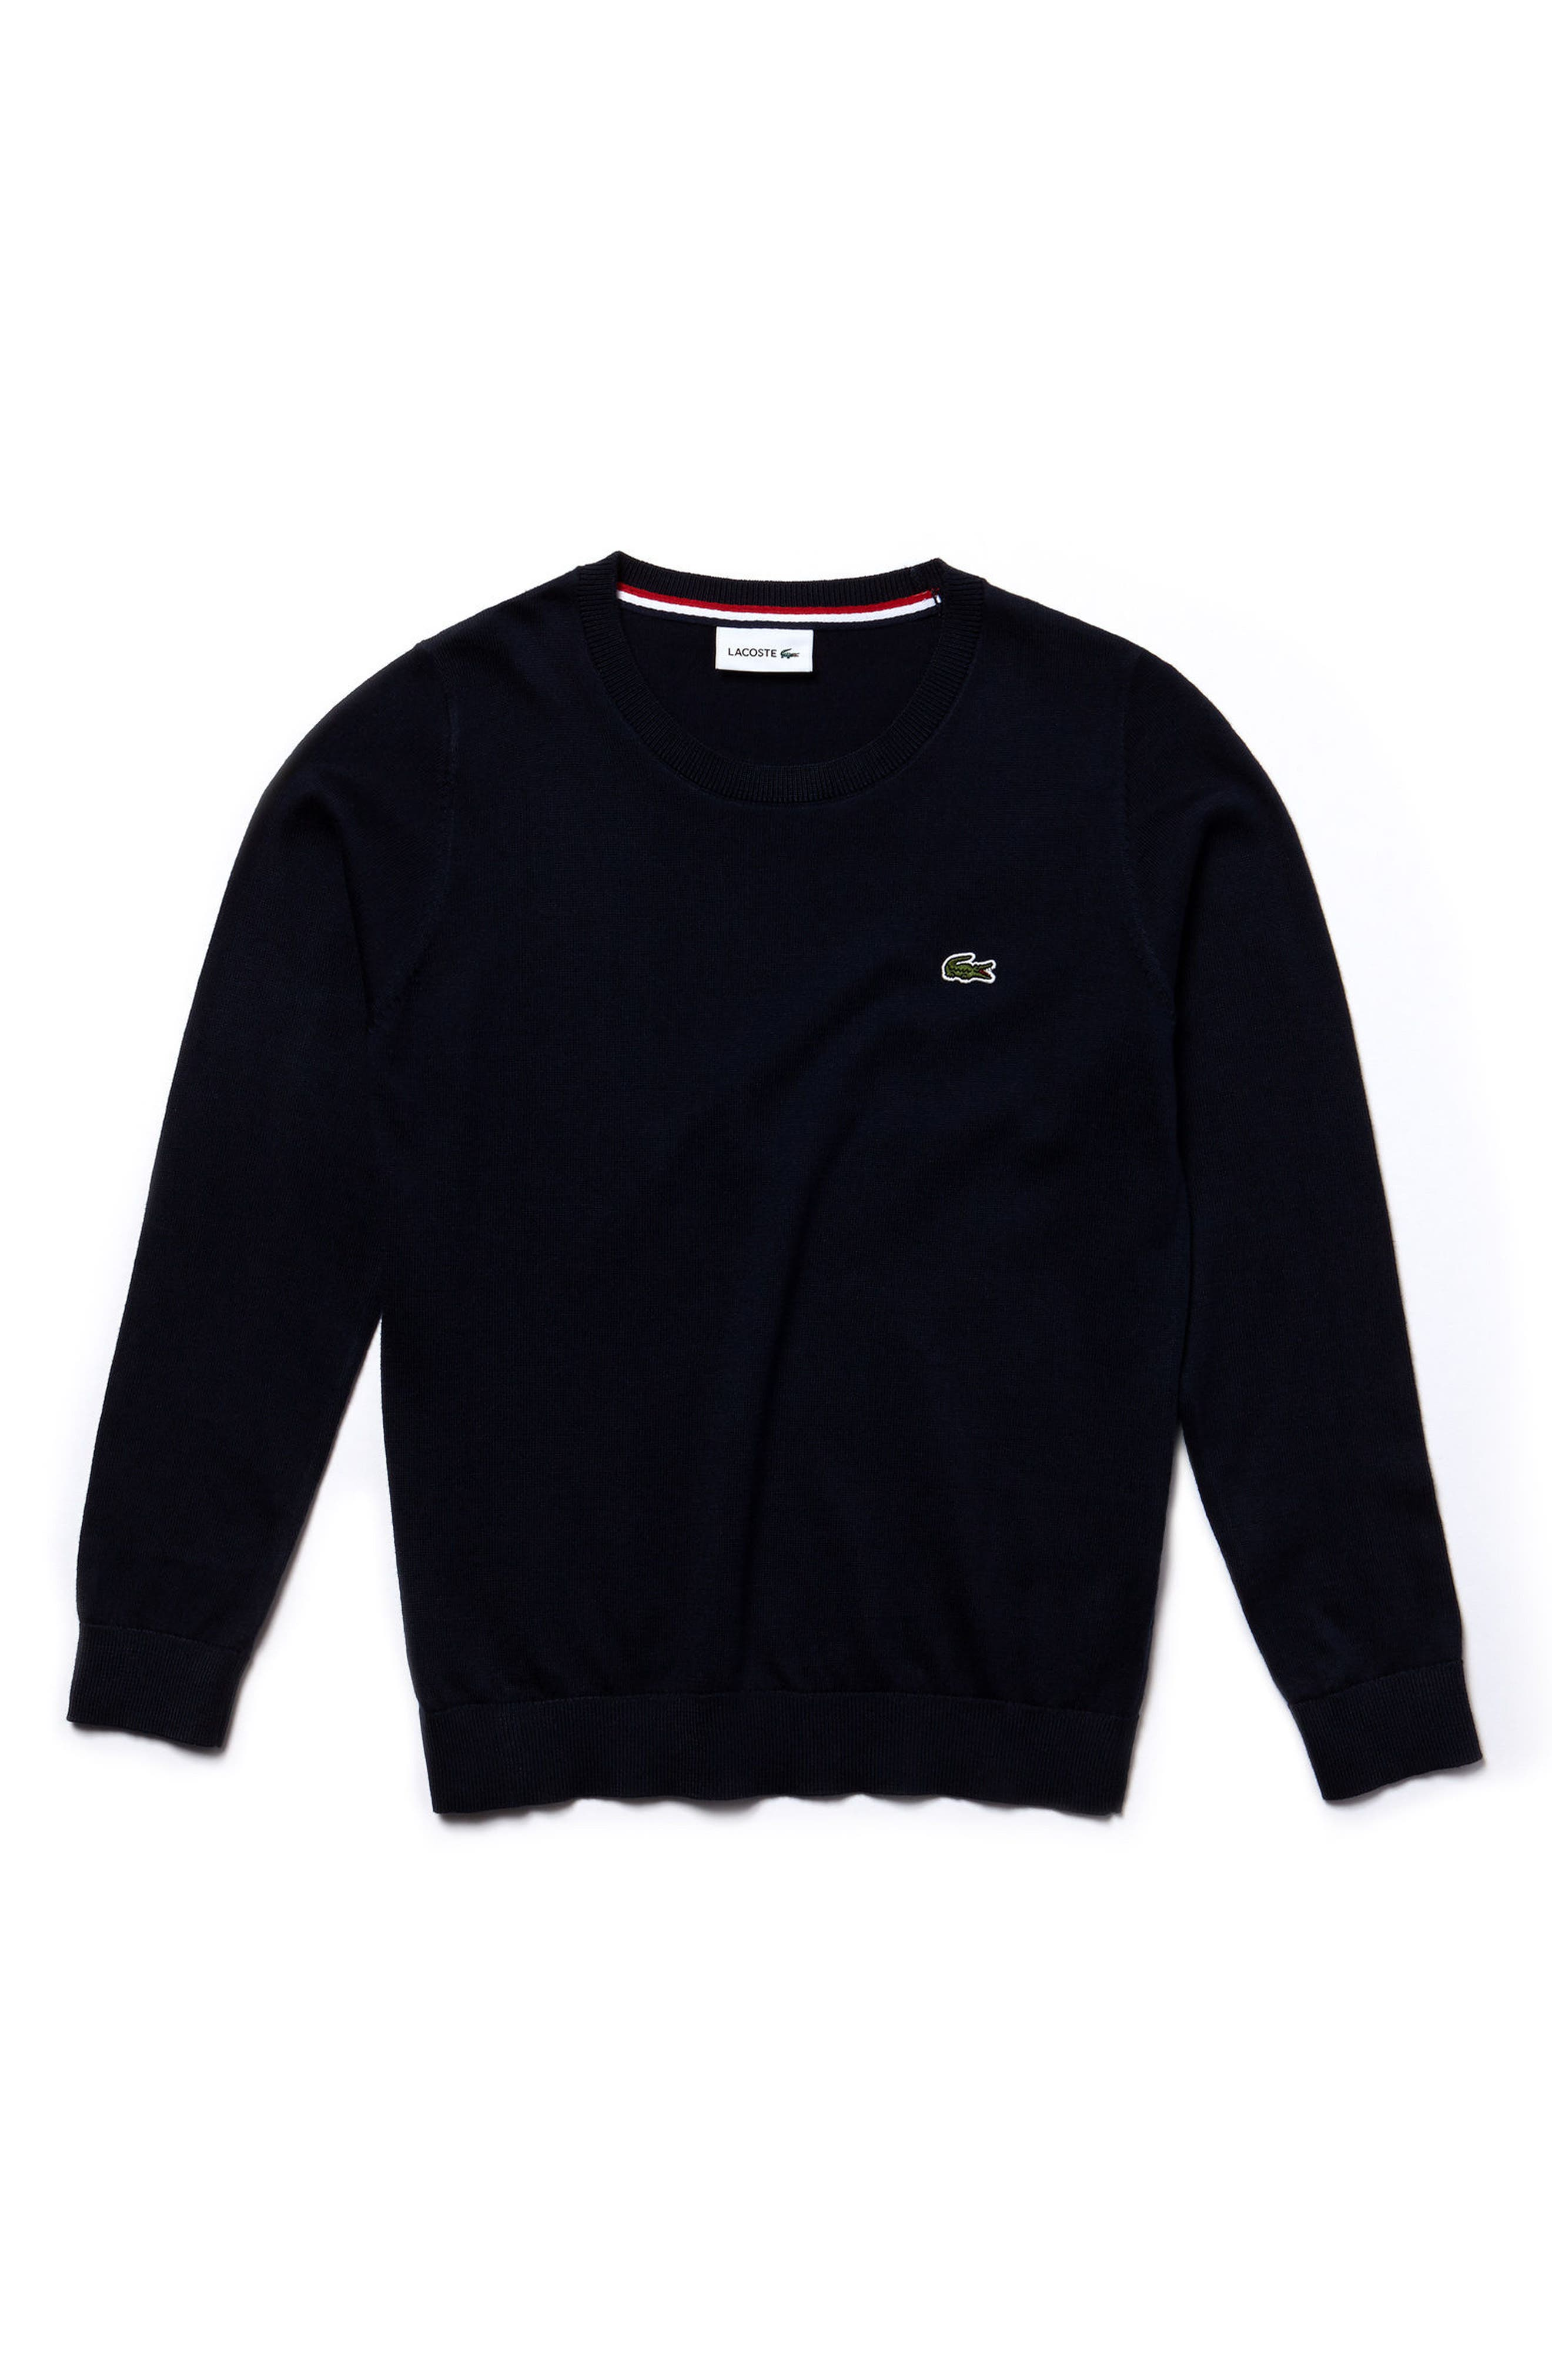 Jersey Crewneck Sweater,                             Main thumbnail 1, color,                             410